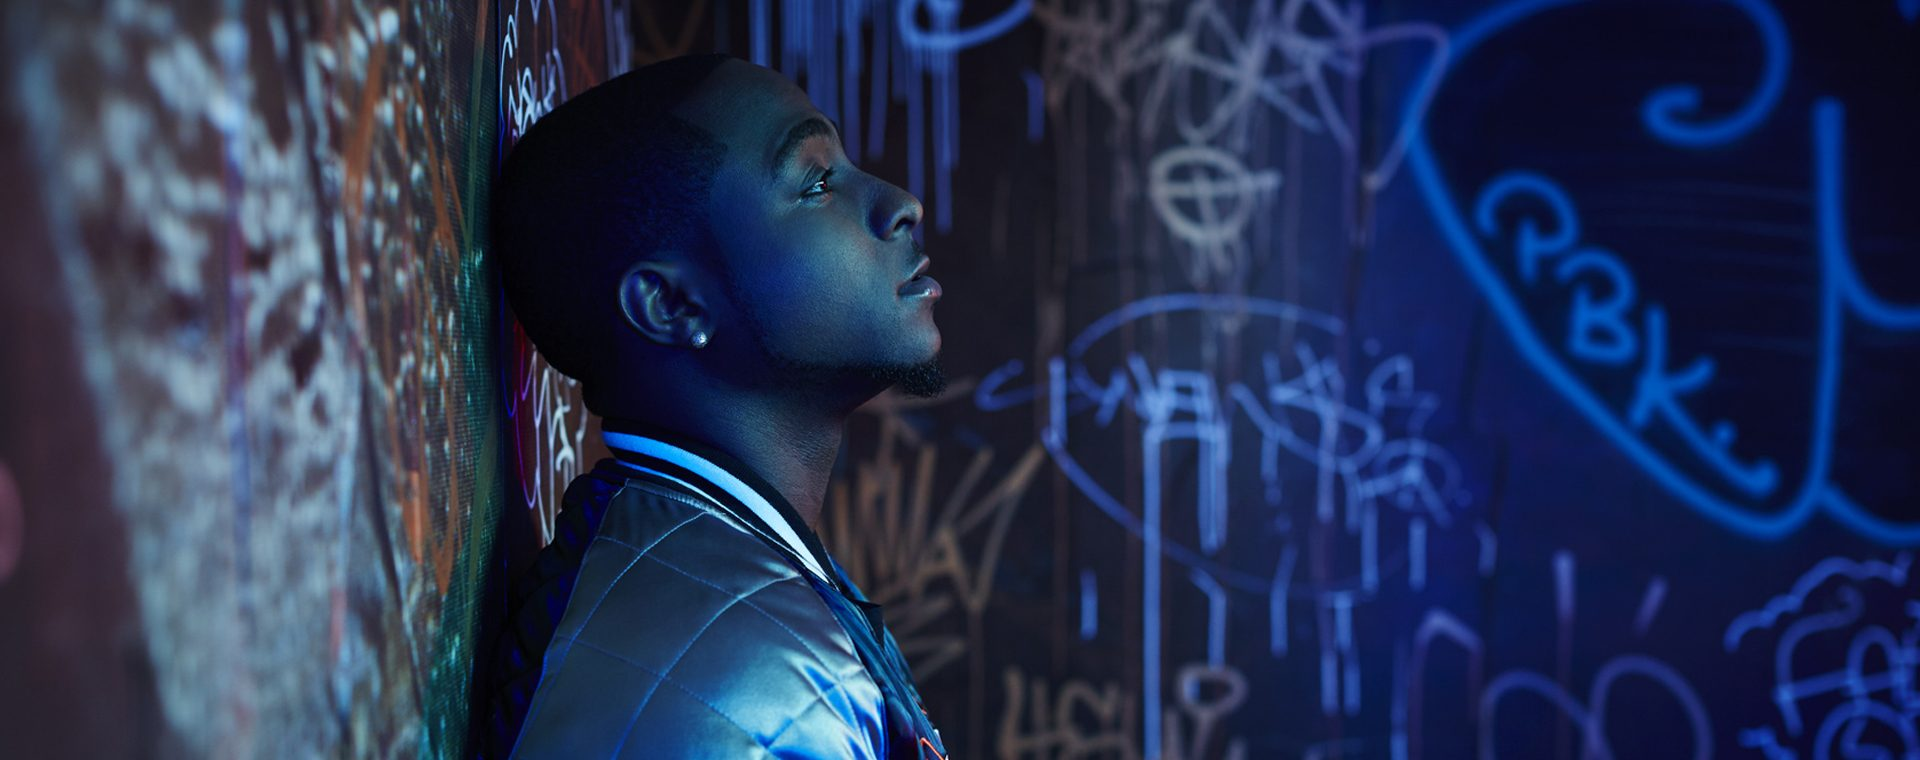 LATEST ISSUE <br><b>Davido</b></br>